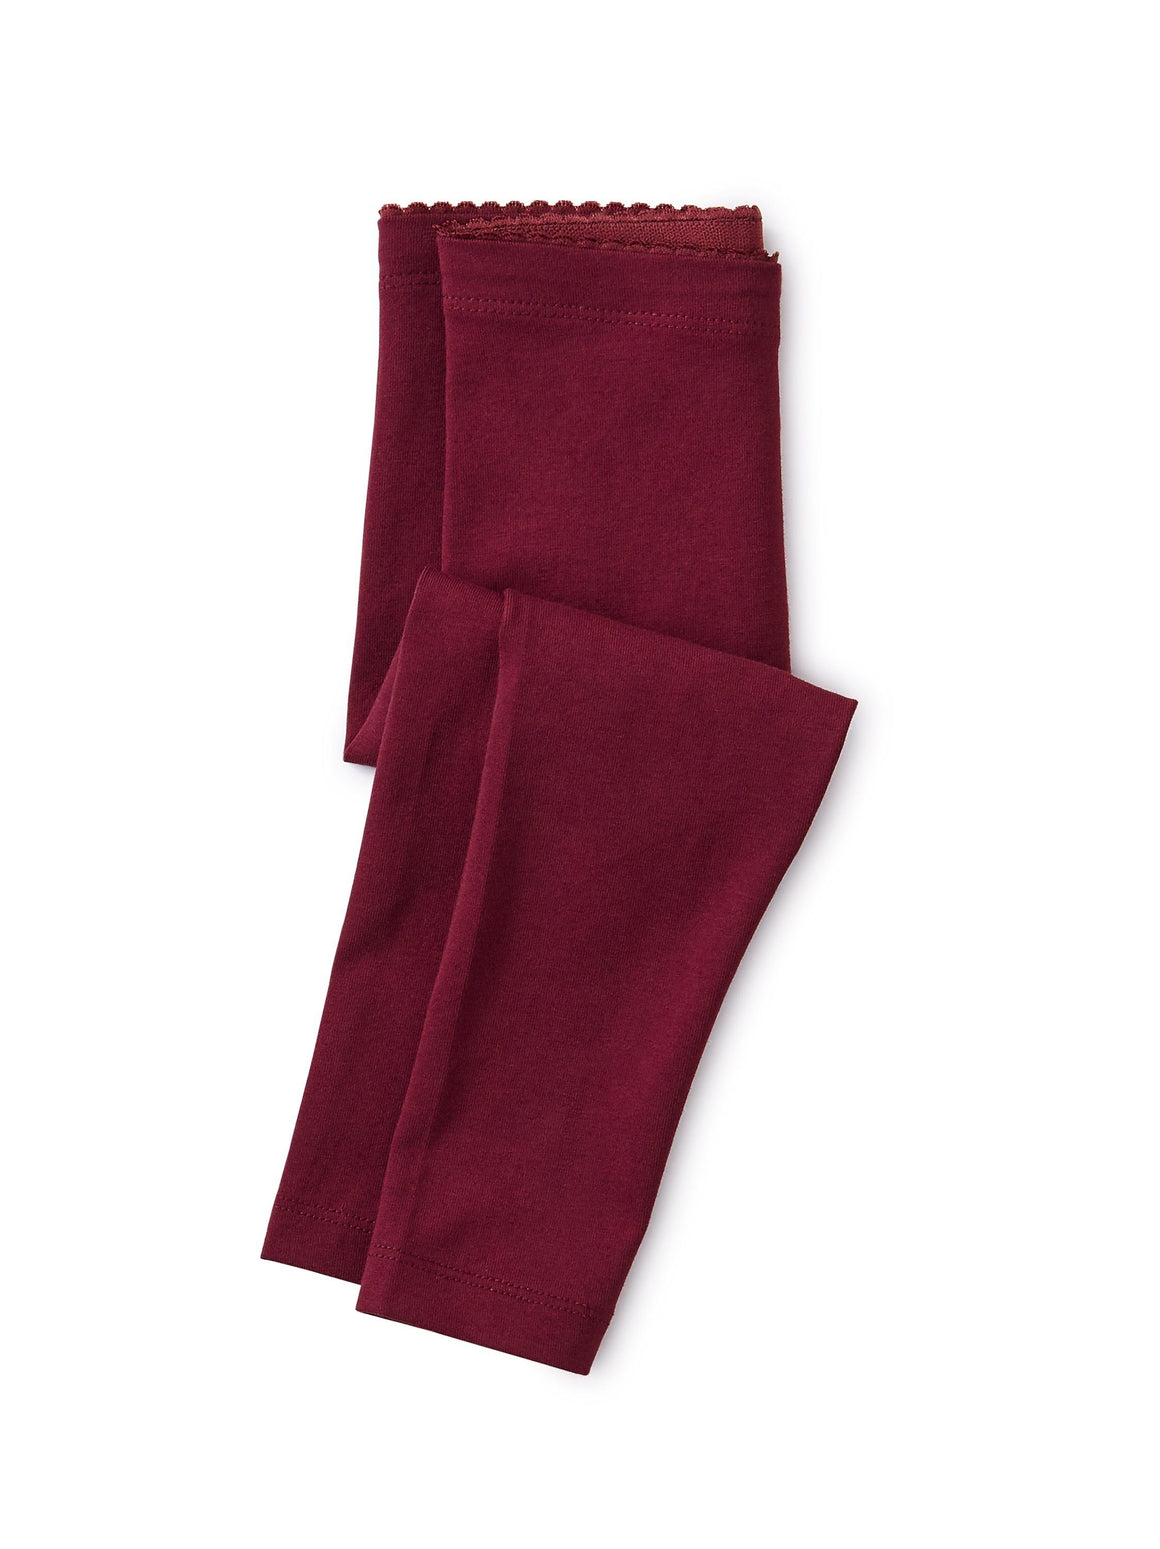 9F32200-553 - Tea Collection Solid Boysenberry Baby Leggings Leggings Tea Collection